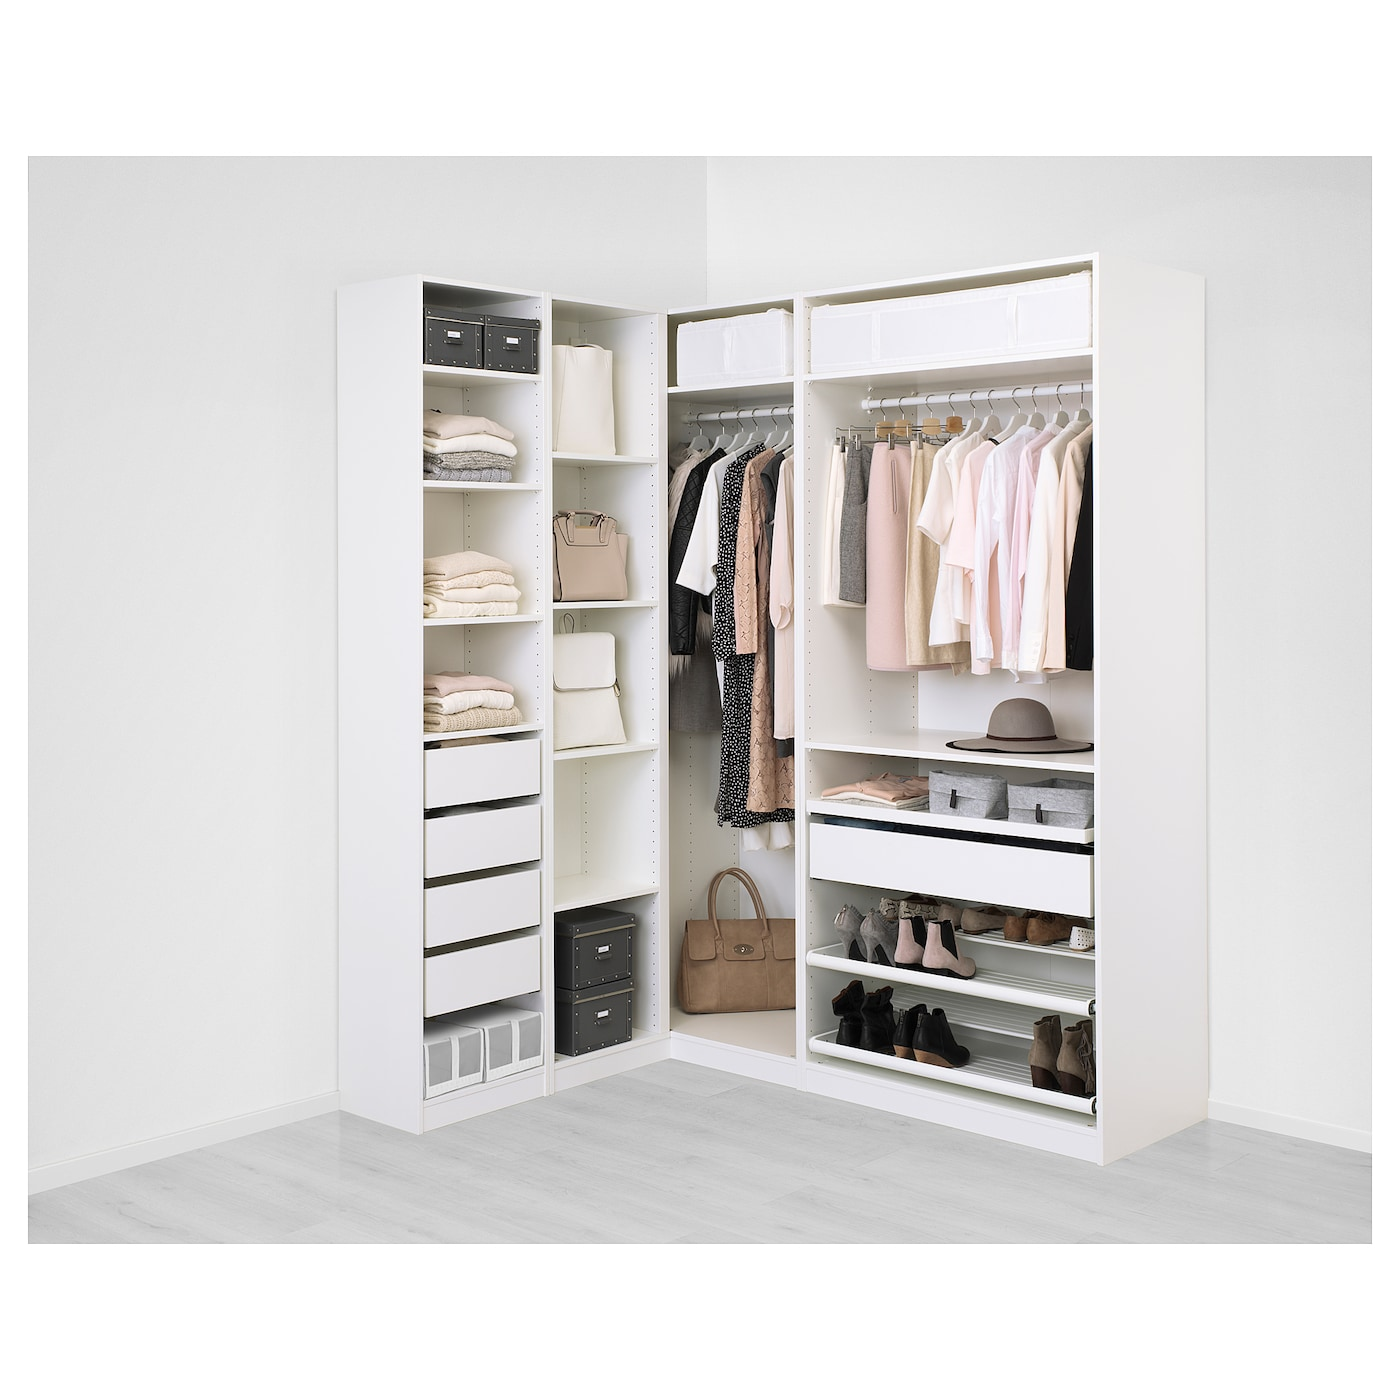 Pax corner wardrobe white flisberget light beige 160 188 x for Ikea cabina armadio pax